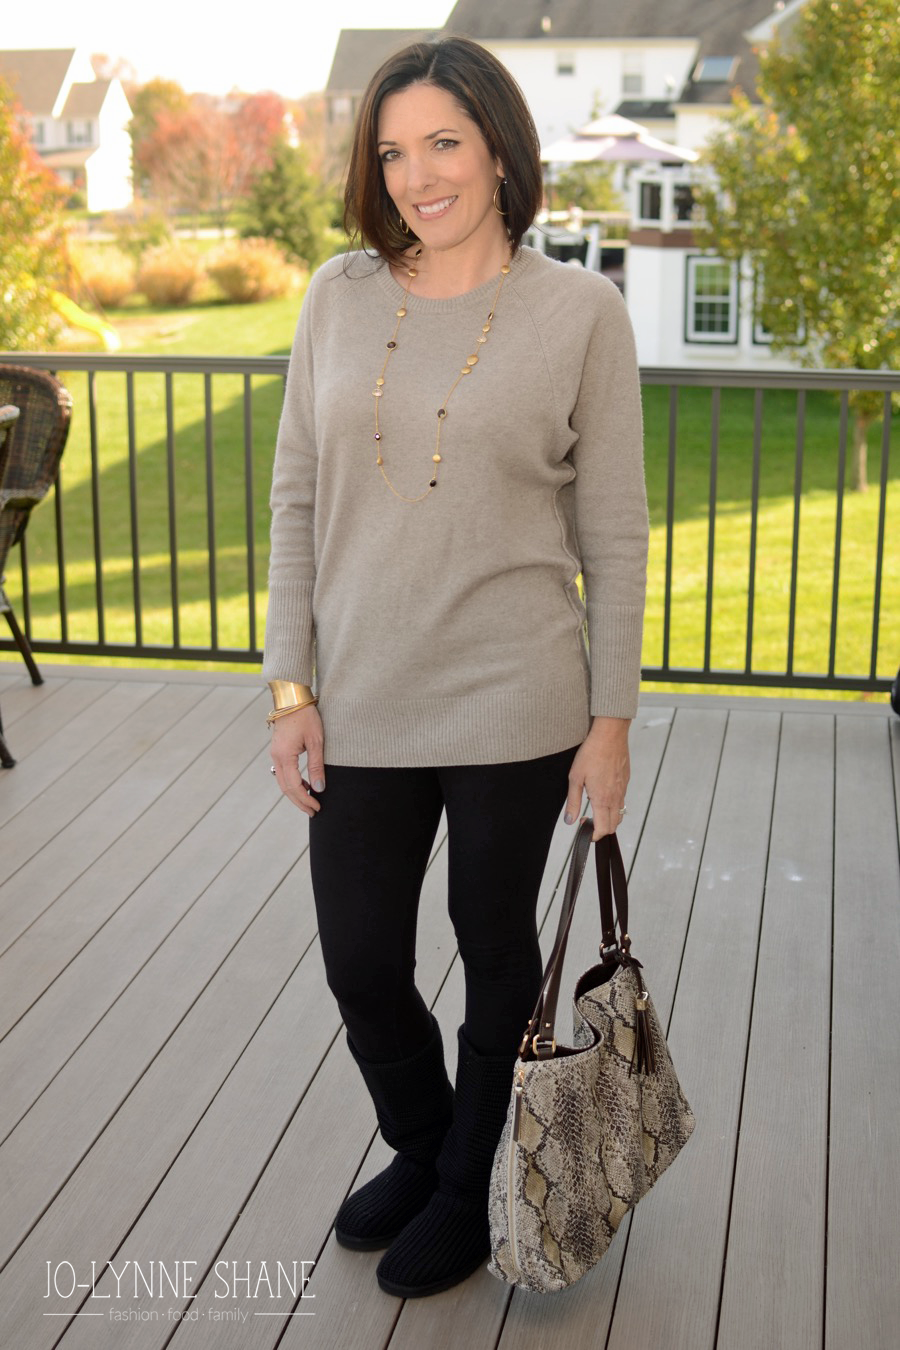 Look - How to stylishly dress over 40 video